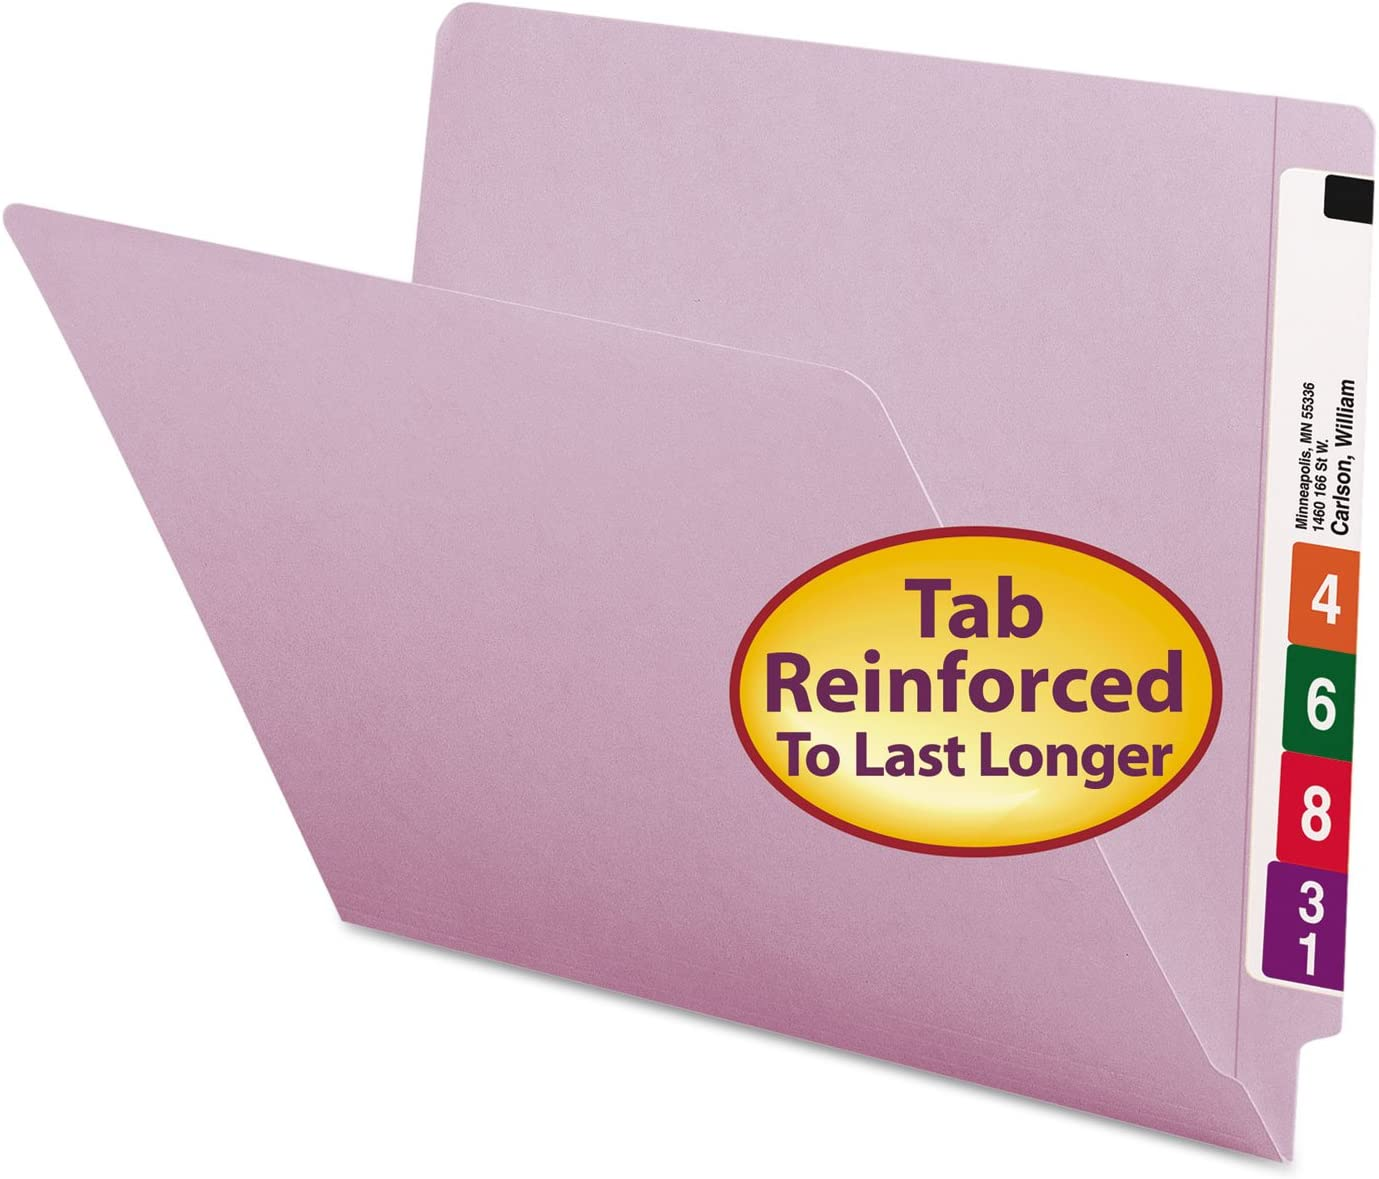 Smead 25410 Colored File Folders Cut Straight Tab End Reinforced Free shipping Same day shipping